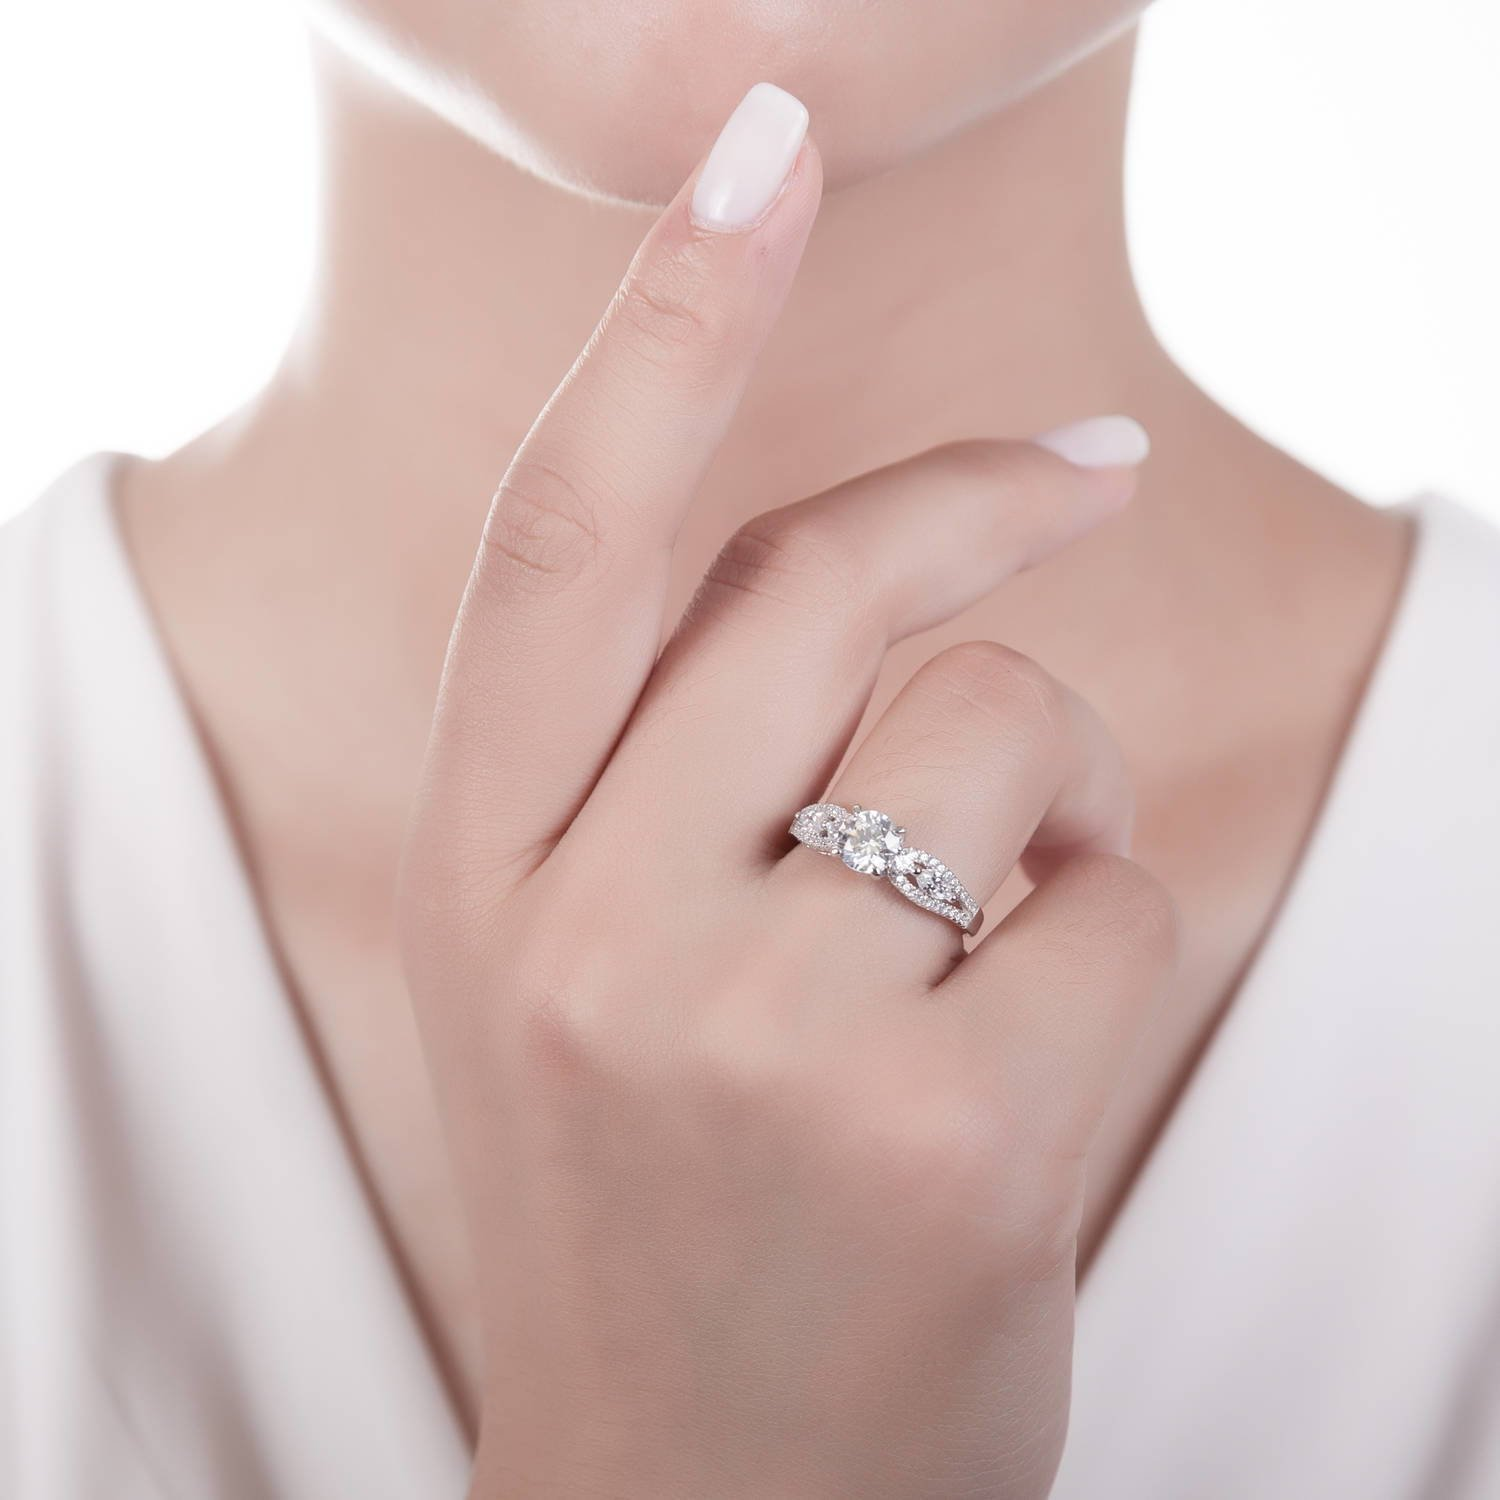 Amazon.com: BERRICLE Rhodium Plated Sterling Silver Solitaire ...